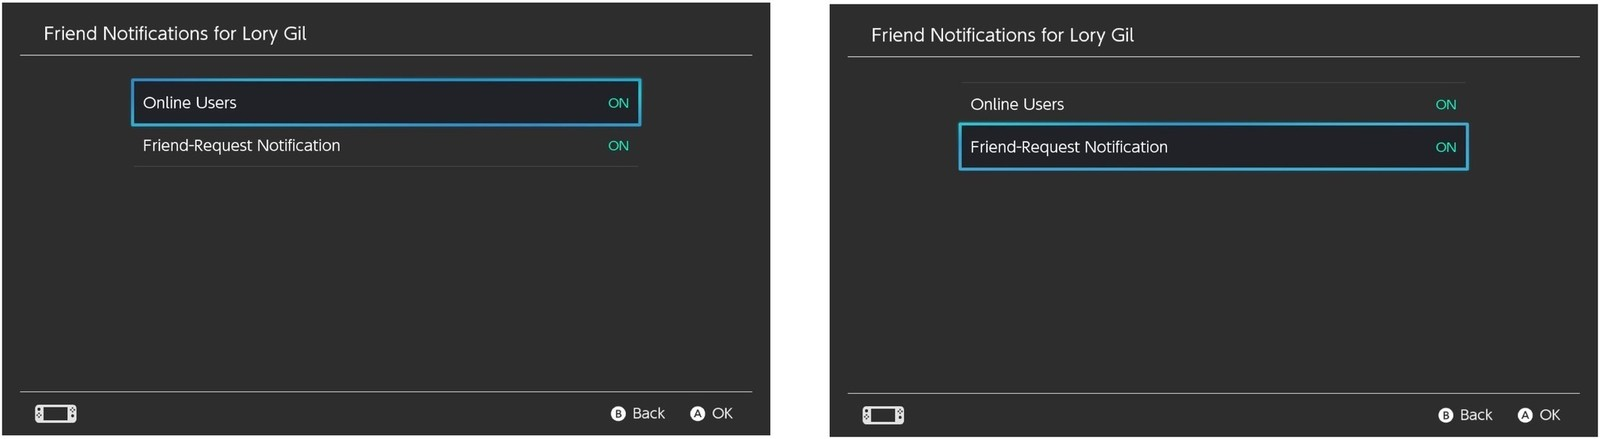 Select Online Users, then select Friend Request Notification